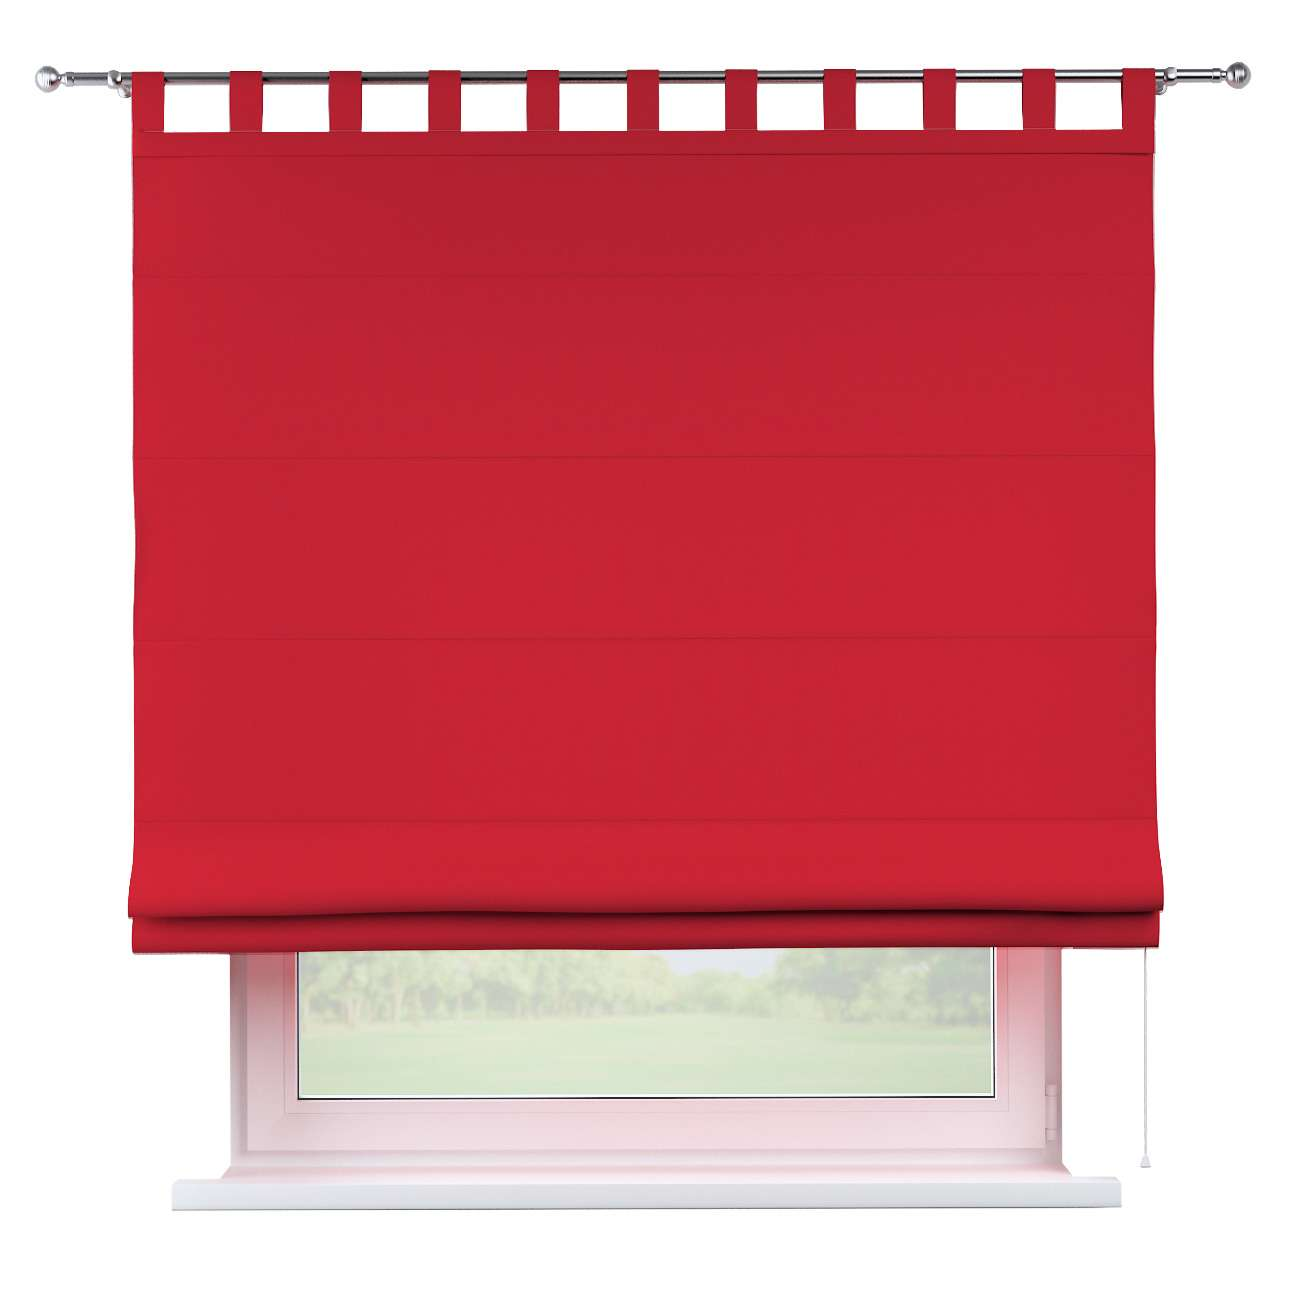 Verona tab top roman blind 80 x 170 cm (31.5 x 67 inch) in collection Cotton Panama, fabric: 702-04